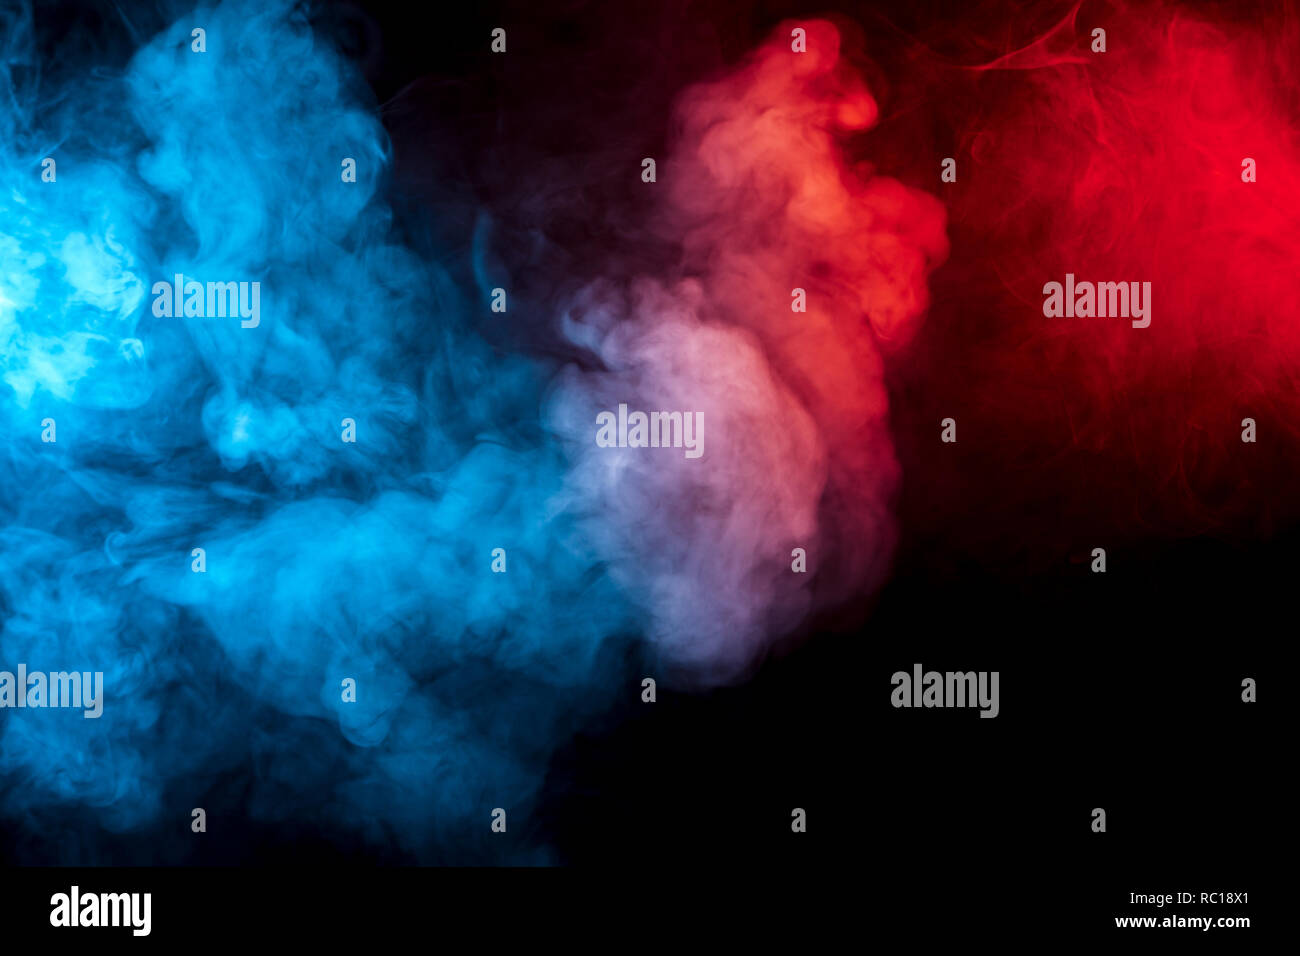 Clouds of isolated colored smoke: blue, red, orange, pink; scrolling on a black background in the dark close up. Stock Photo